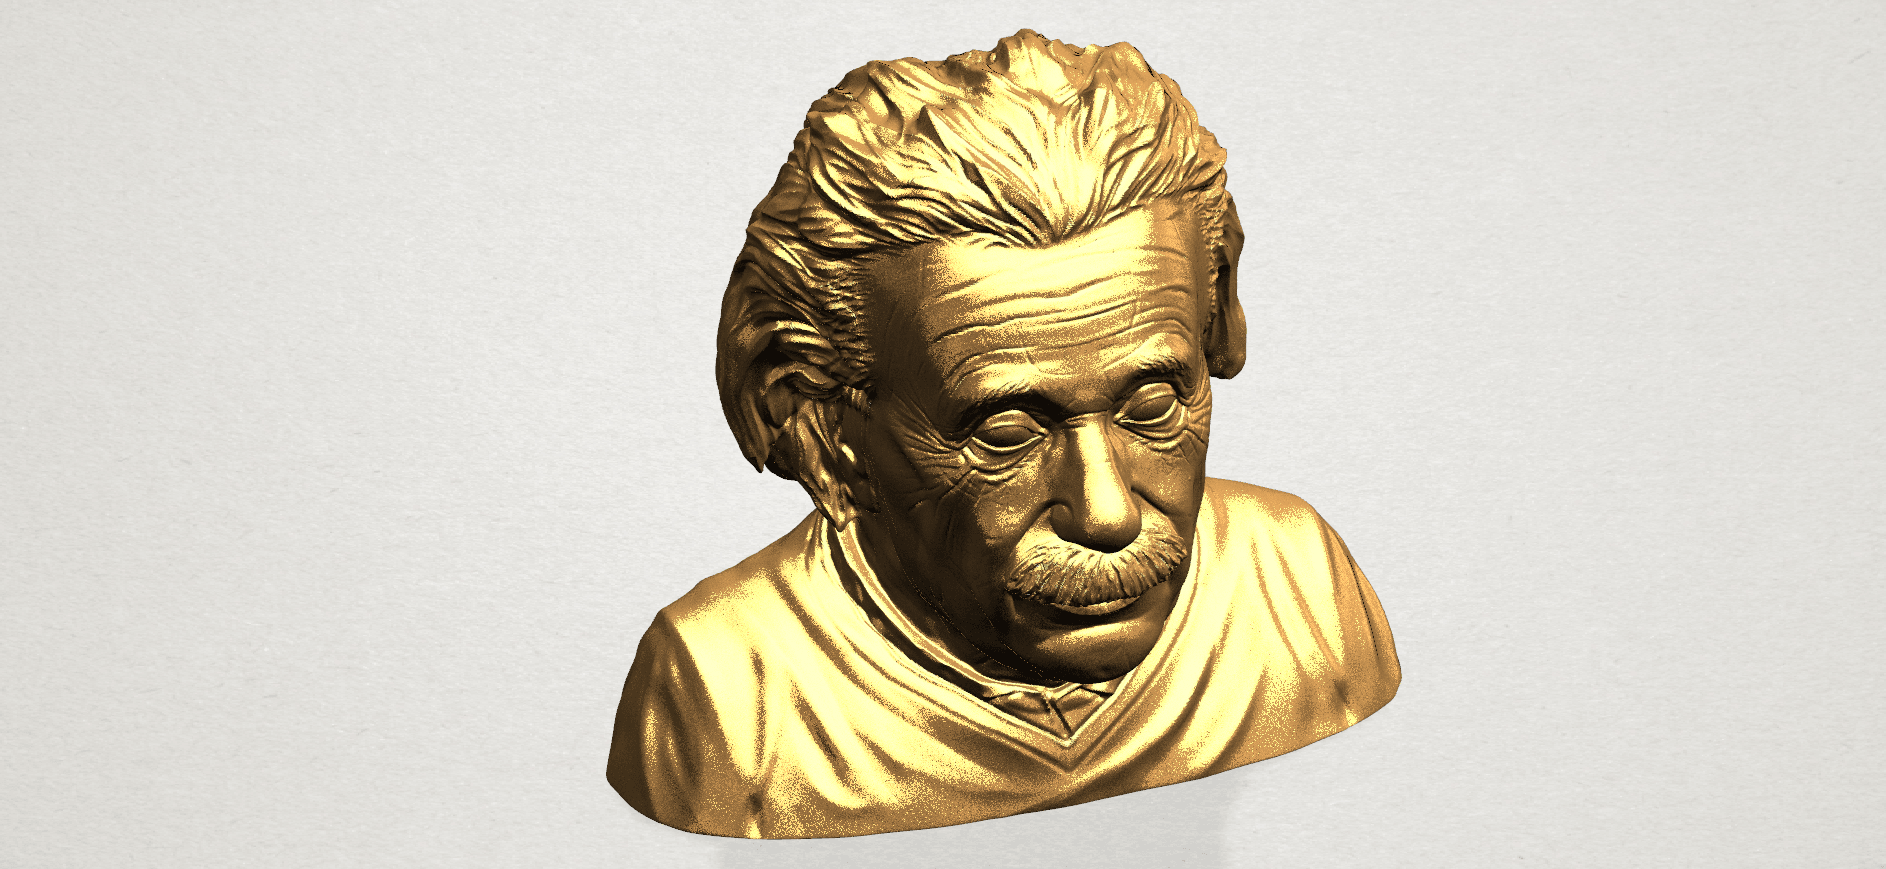 Einstein A07.png Download free STL file Einstein • 3D printer template, GeorgesNikkei